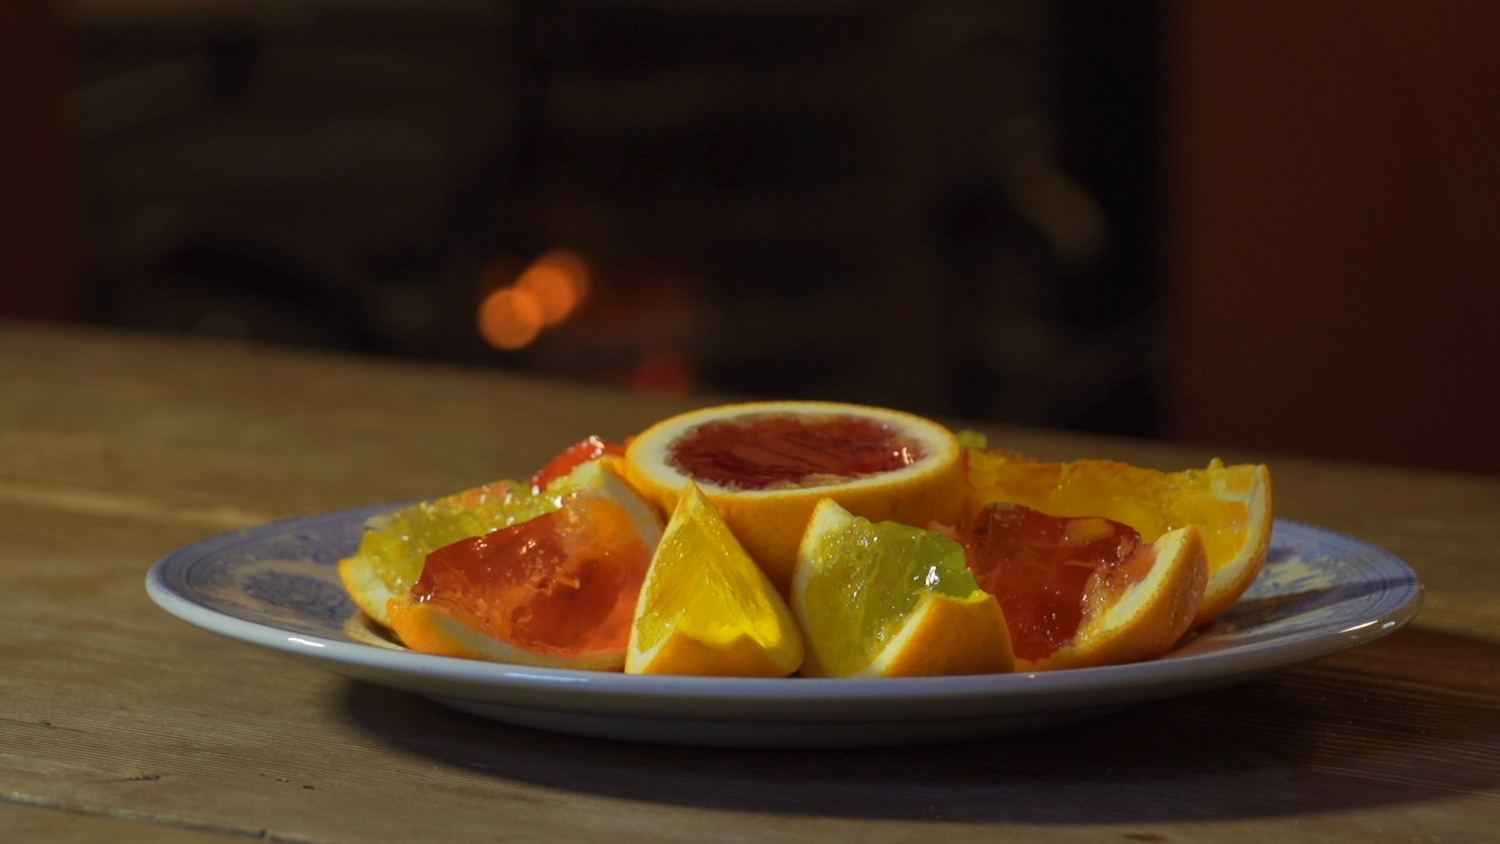 A platter of finished jellies set in cut-up oranges.